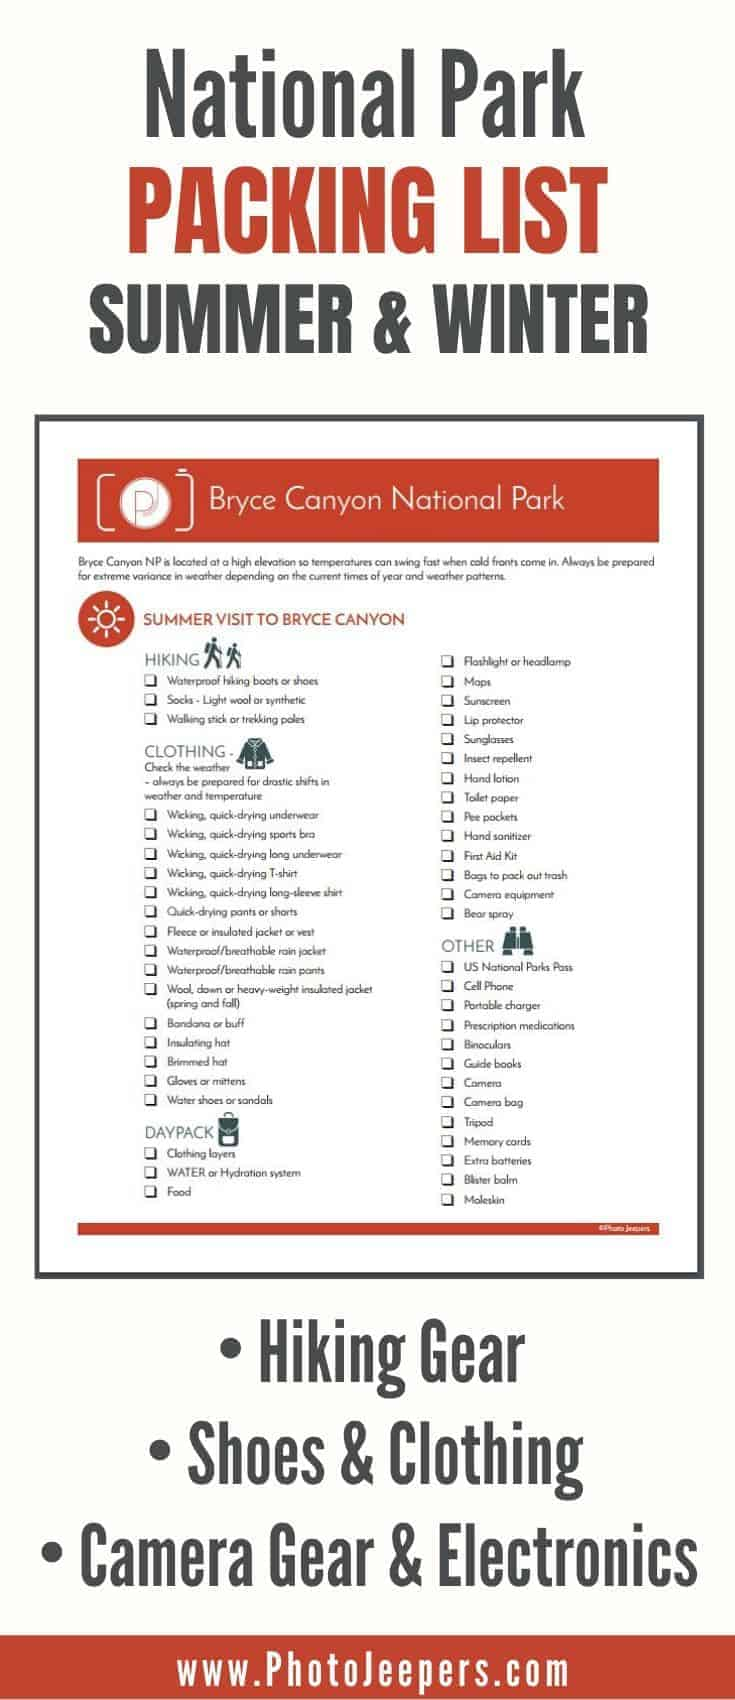 National Park packing list for summer and winter: hiking ear, shoes & clothing, camera gear and electronics #nationalparks #packing #packinglist #photojeepers